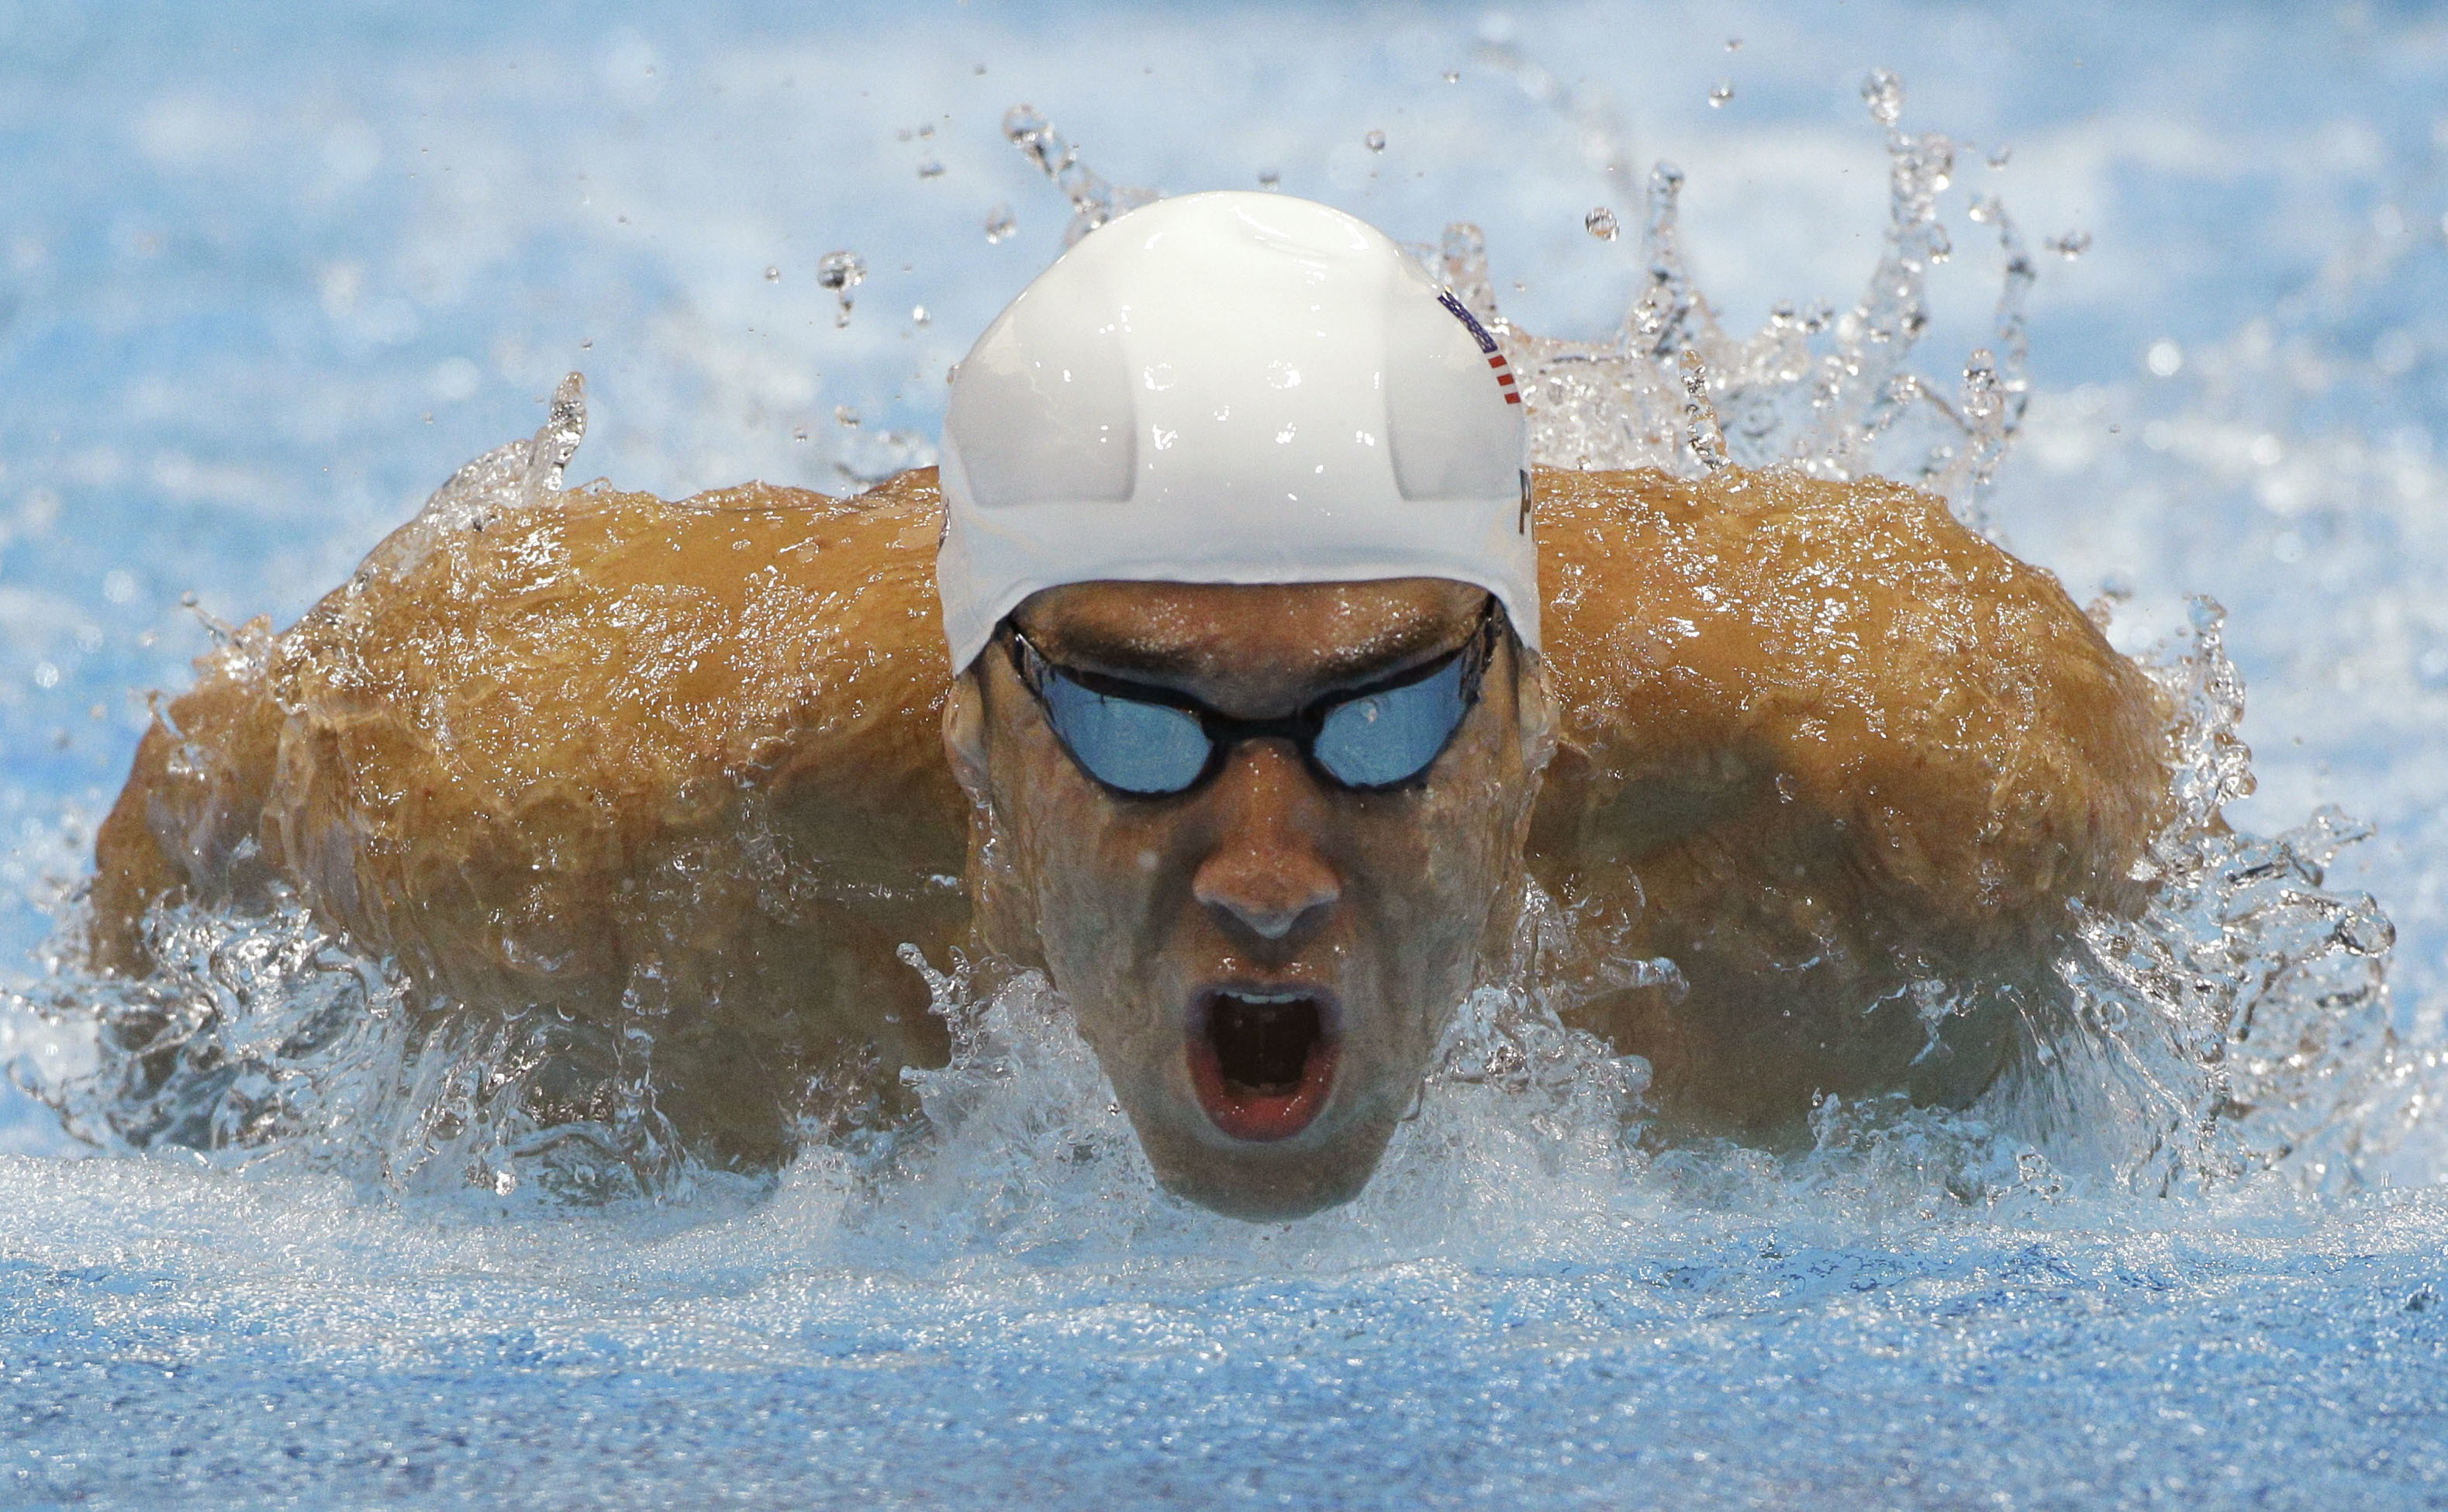 FILE - In this July 28, 2012, file photo, Michael Phelps competes in a heat of the men's 400-meter individual medley at the 2012 Summer Olympics in London. After retiring and then un-retiring, Phelps will be in Rio as the first U.S. male swimmer to compet